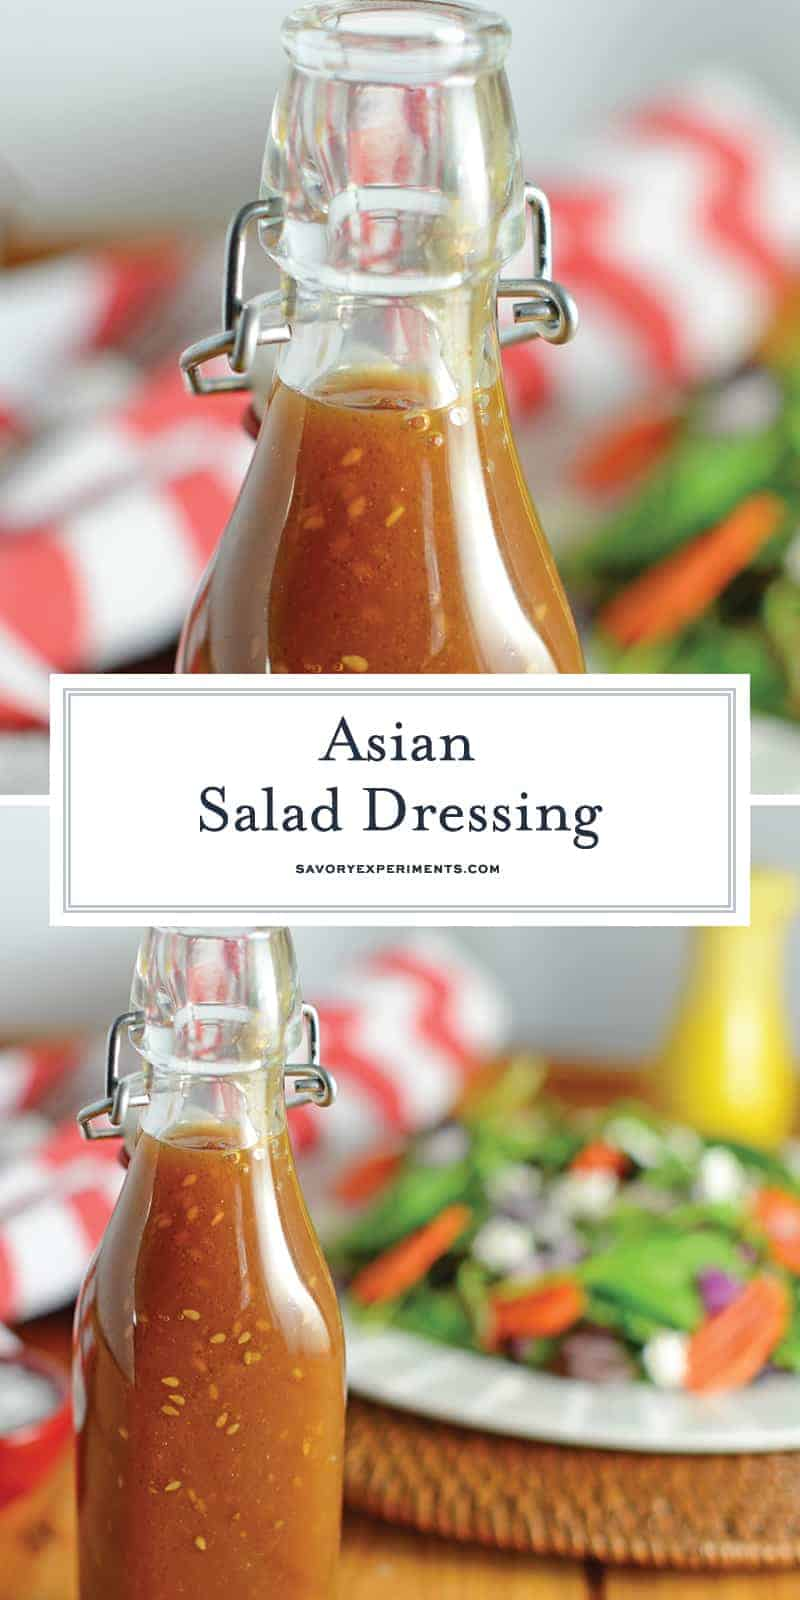 This Asian Salad Dressing is a great copycat recipe for what you get at Japanese steakhouses like Benihana or Kobe! It's a sweet ginger and sesame combination! #asiansaladdressing #gingersaladdressing #japanesesaladdressing www.savoryexperiments.com